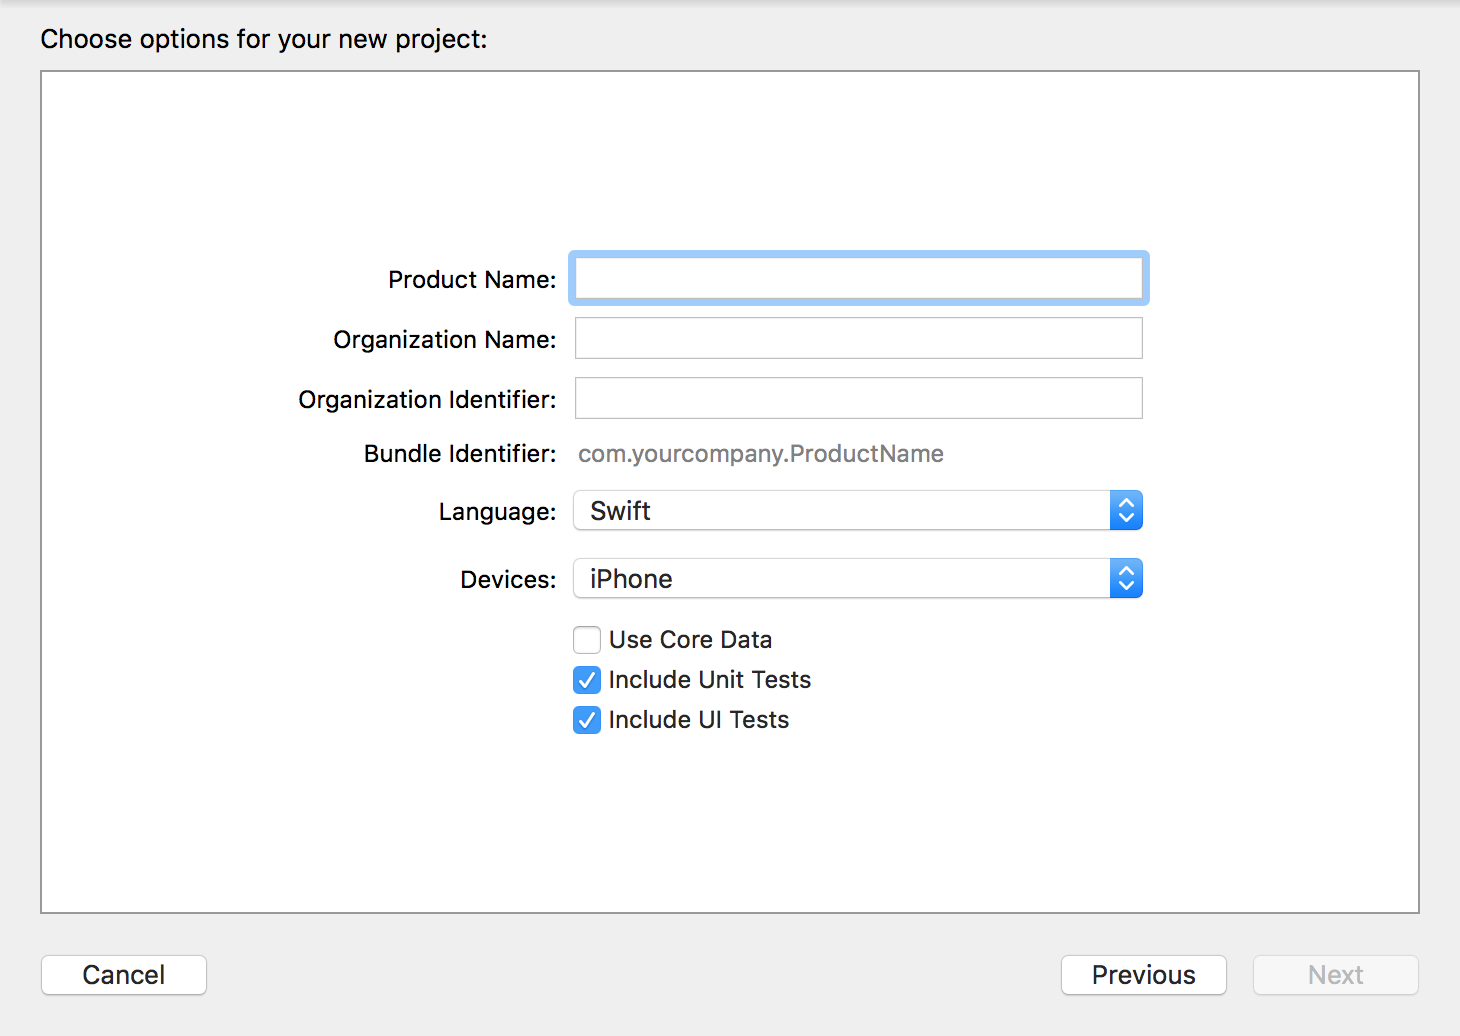 Creation of new project in Xcode